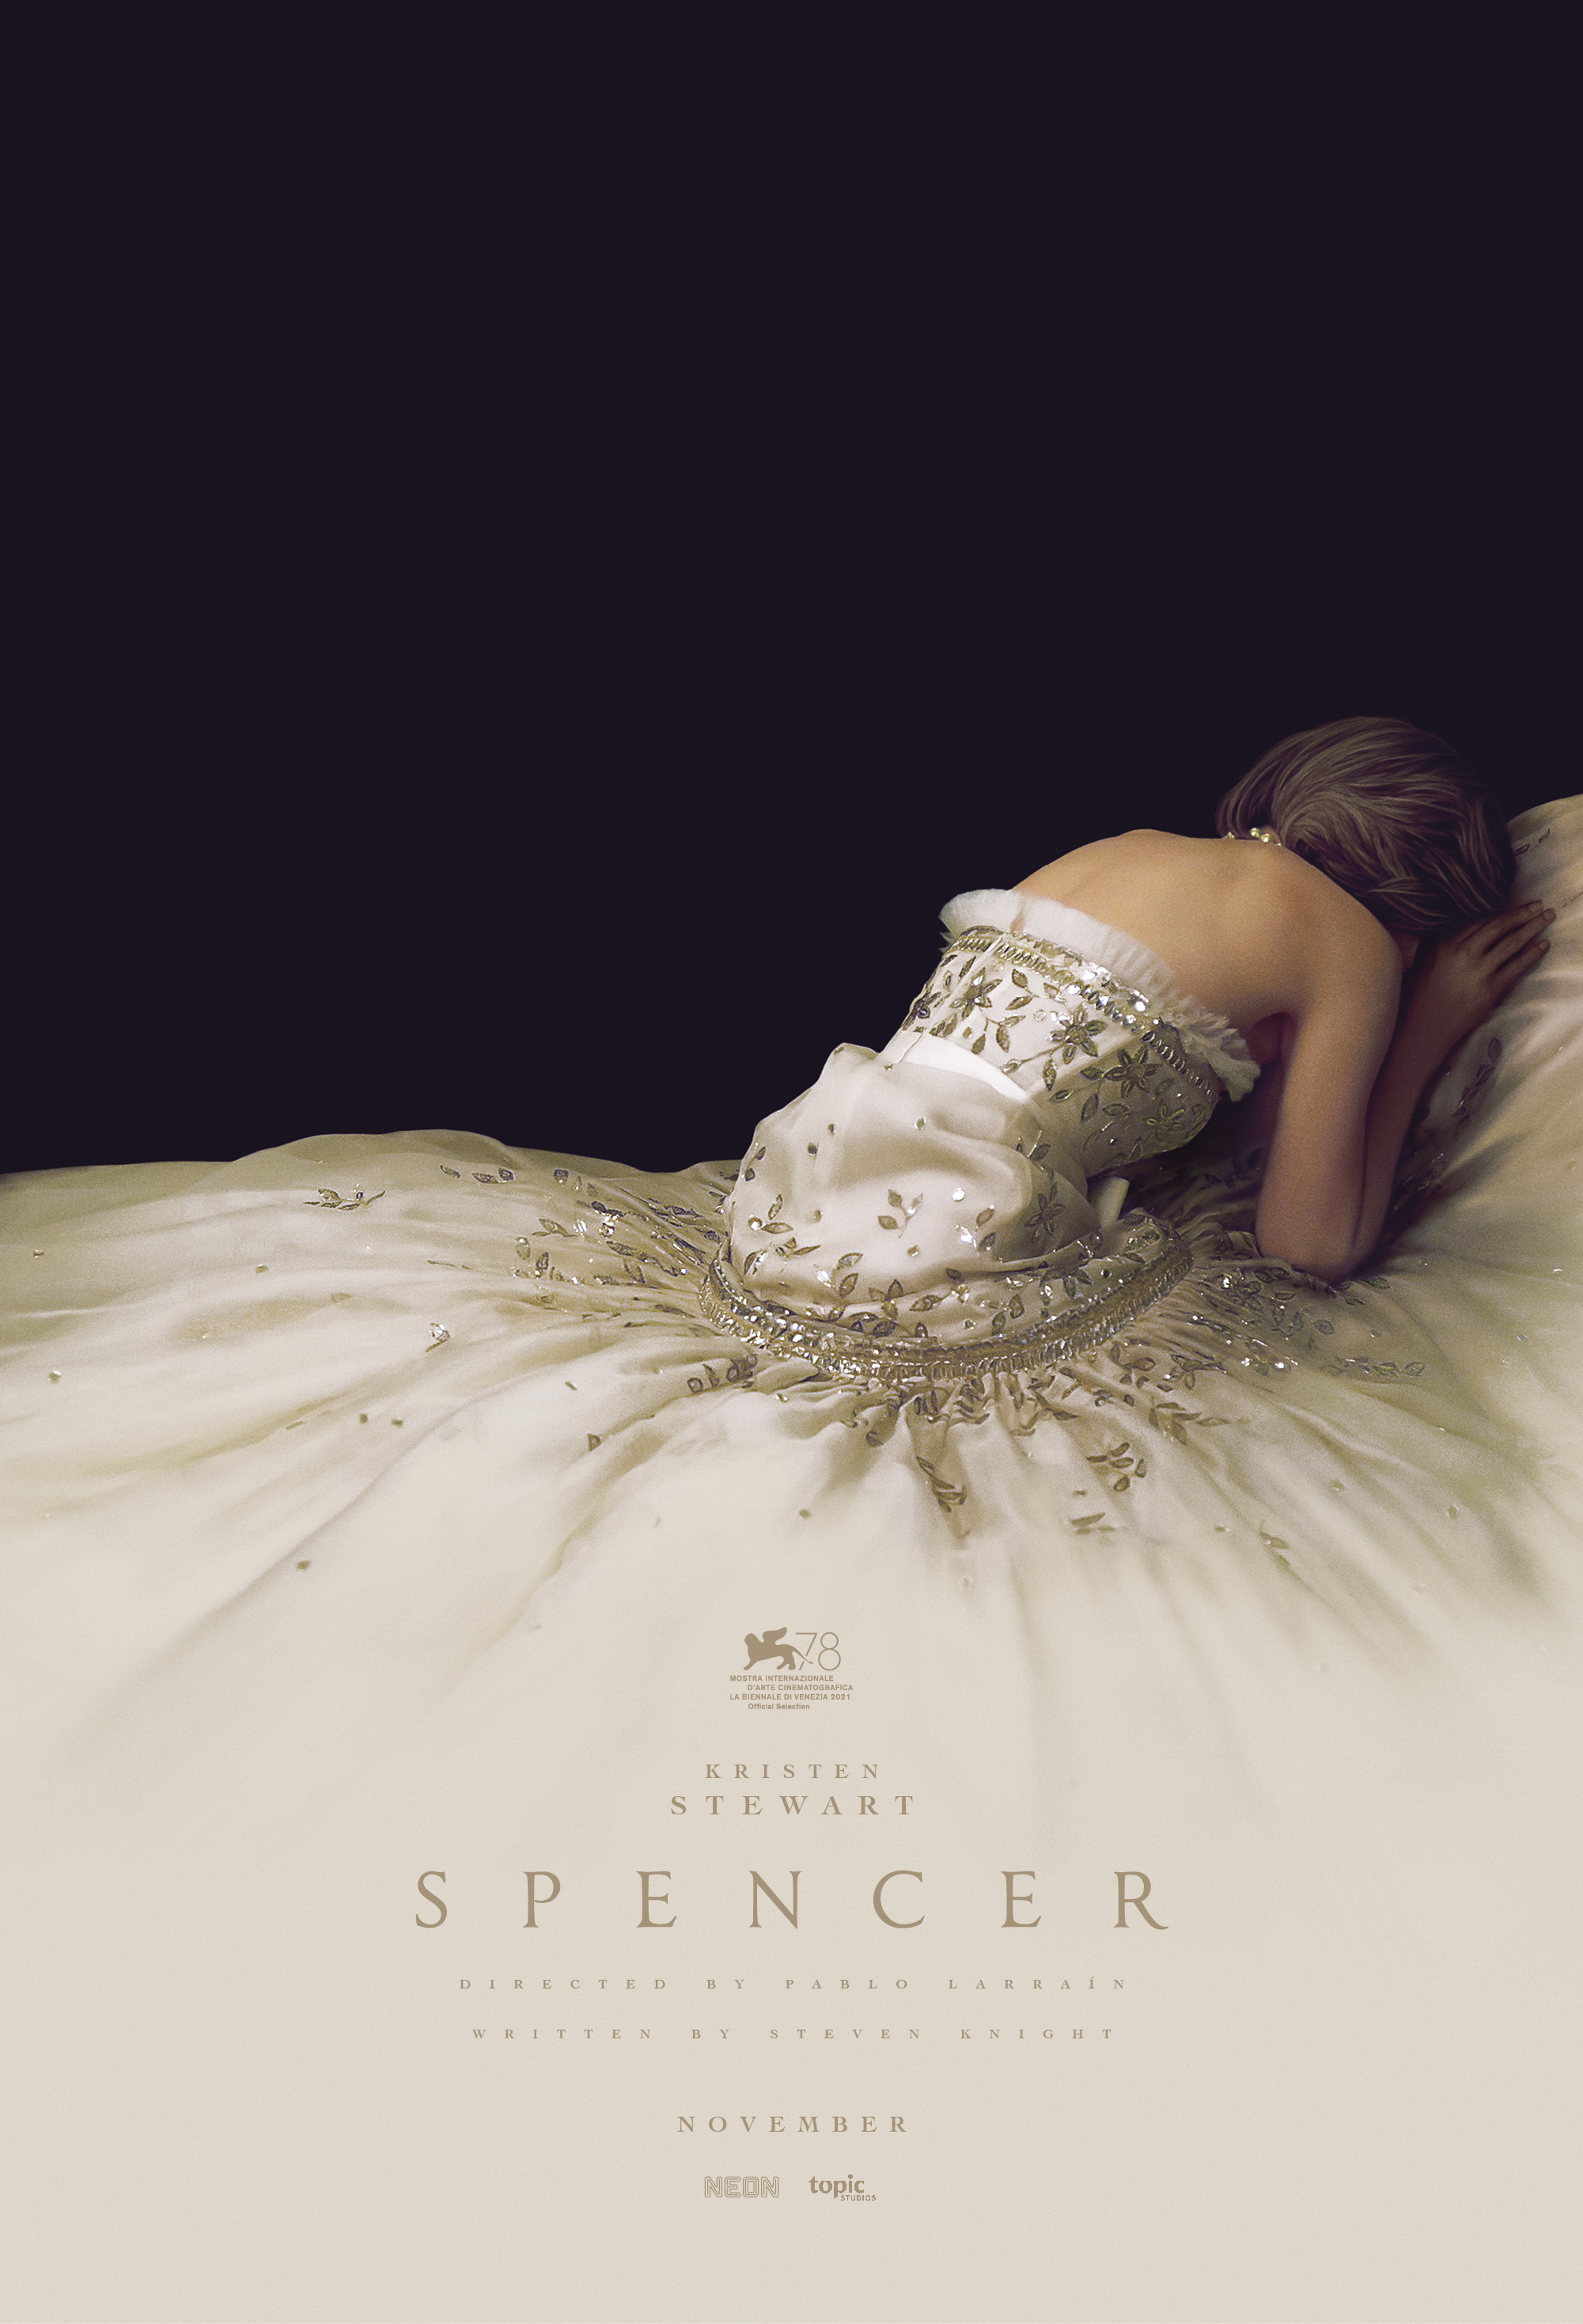 New poster for Pablo Larraín's SPENCER, in theaters Nov. 5